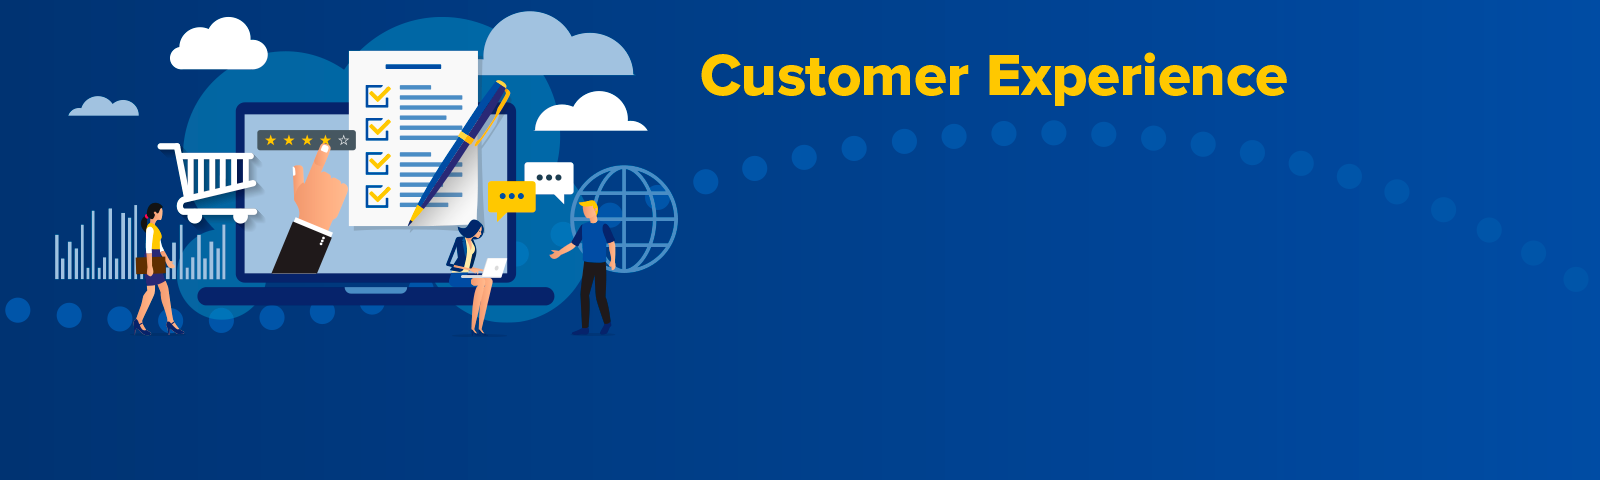 Customer Experience – Fabory presents